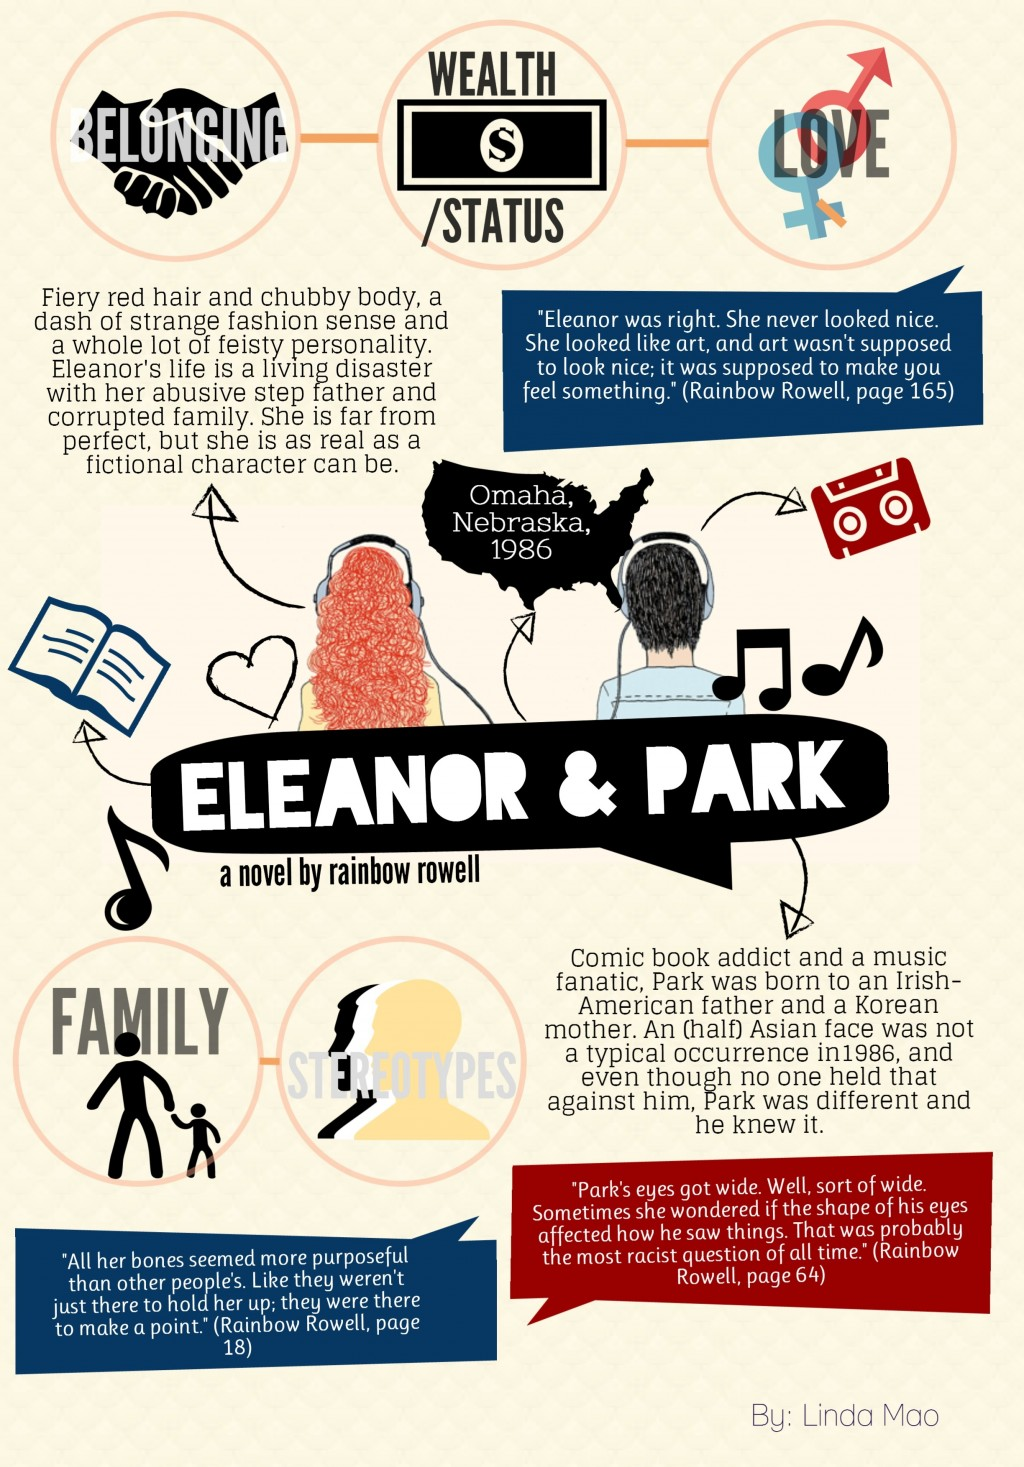 005 Visual Essay Eleanor And Park Fearsome Verbal Definition Maker Ideas Large